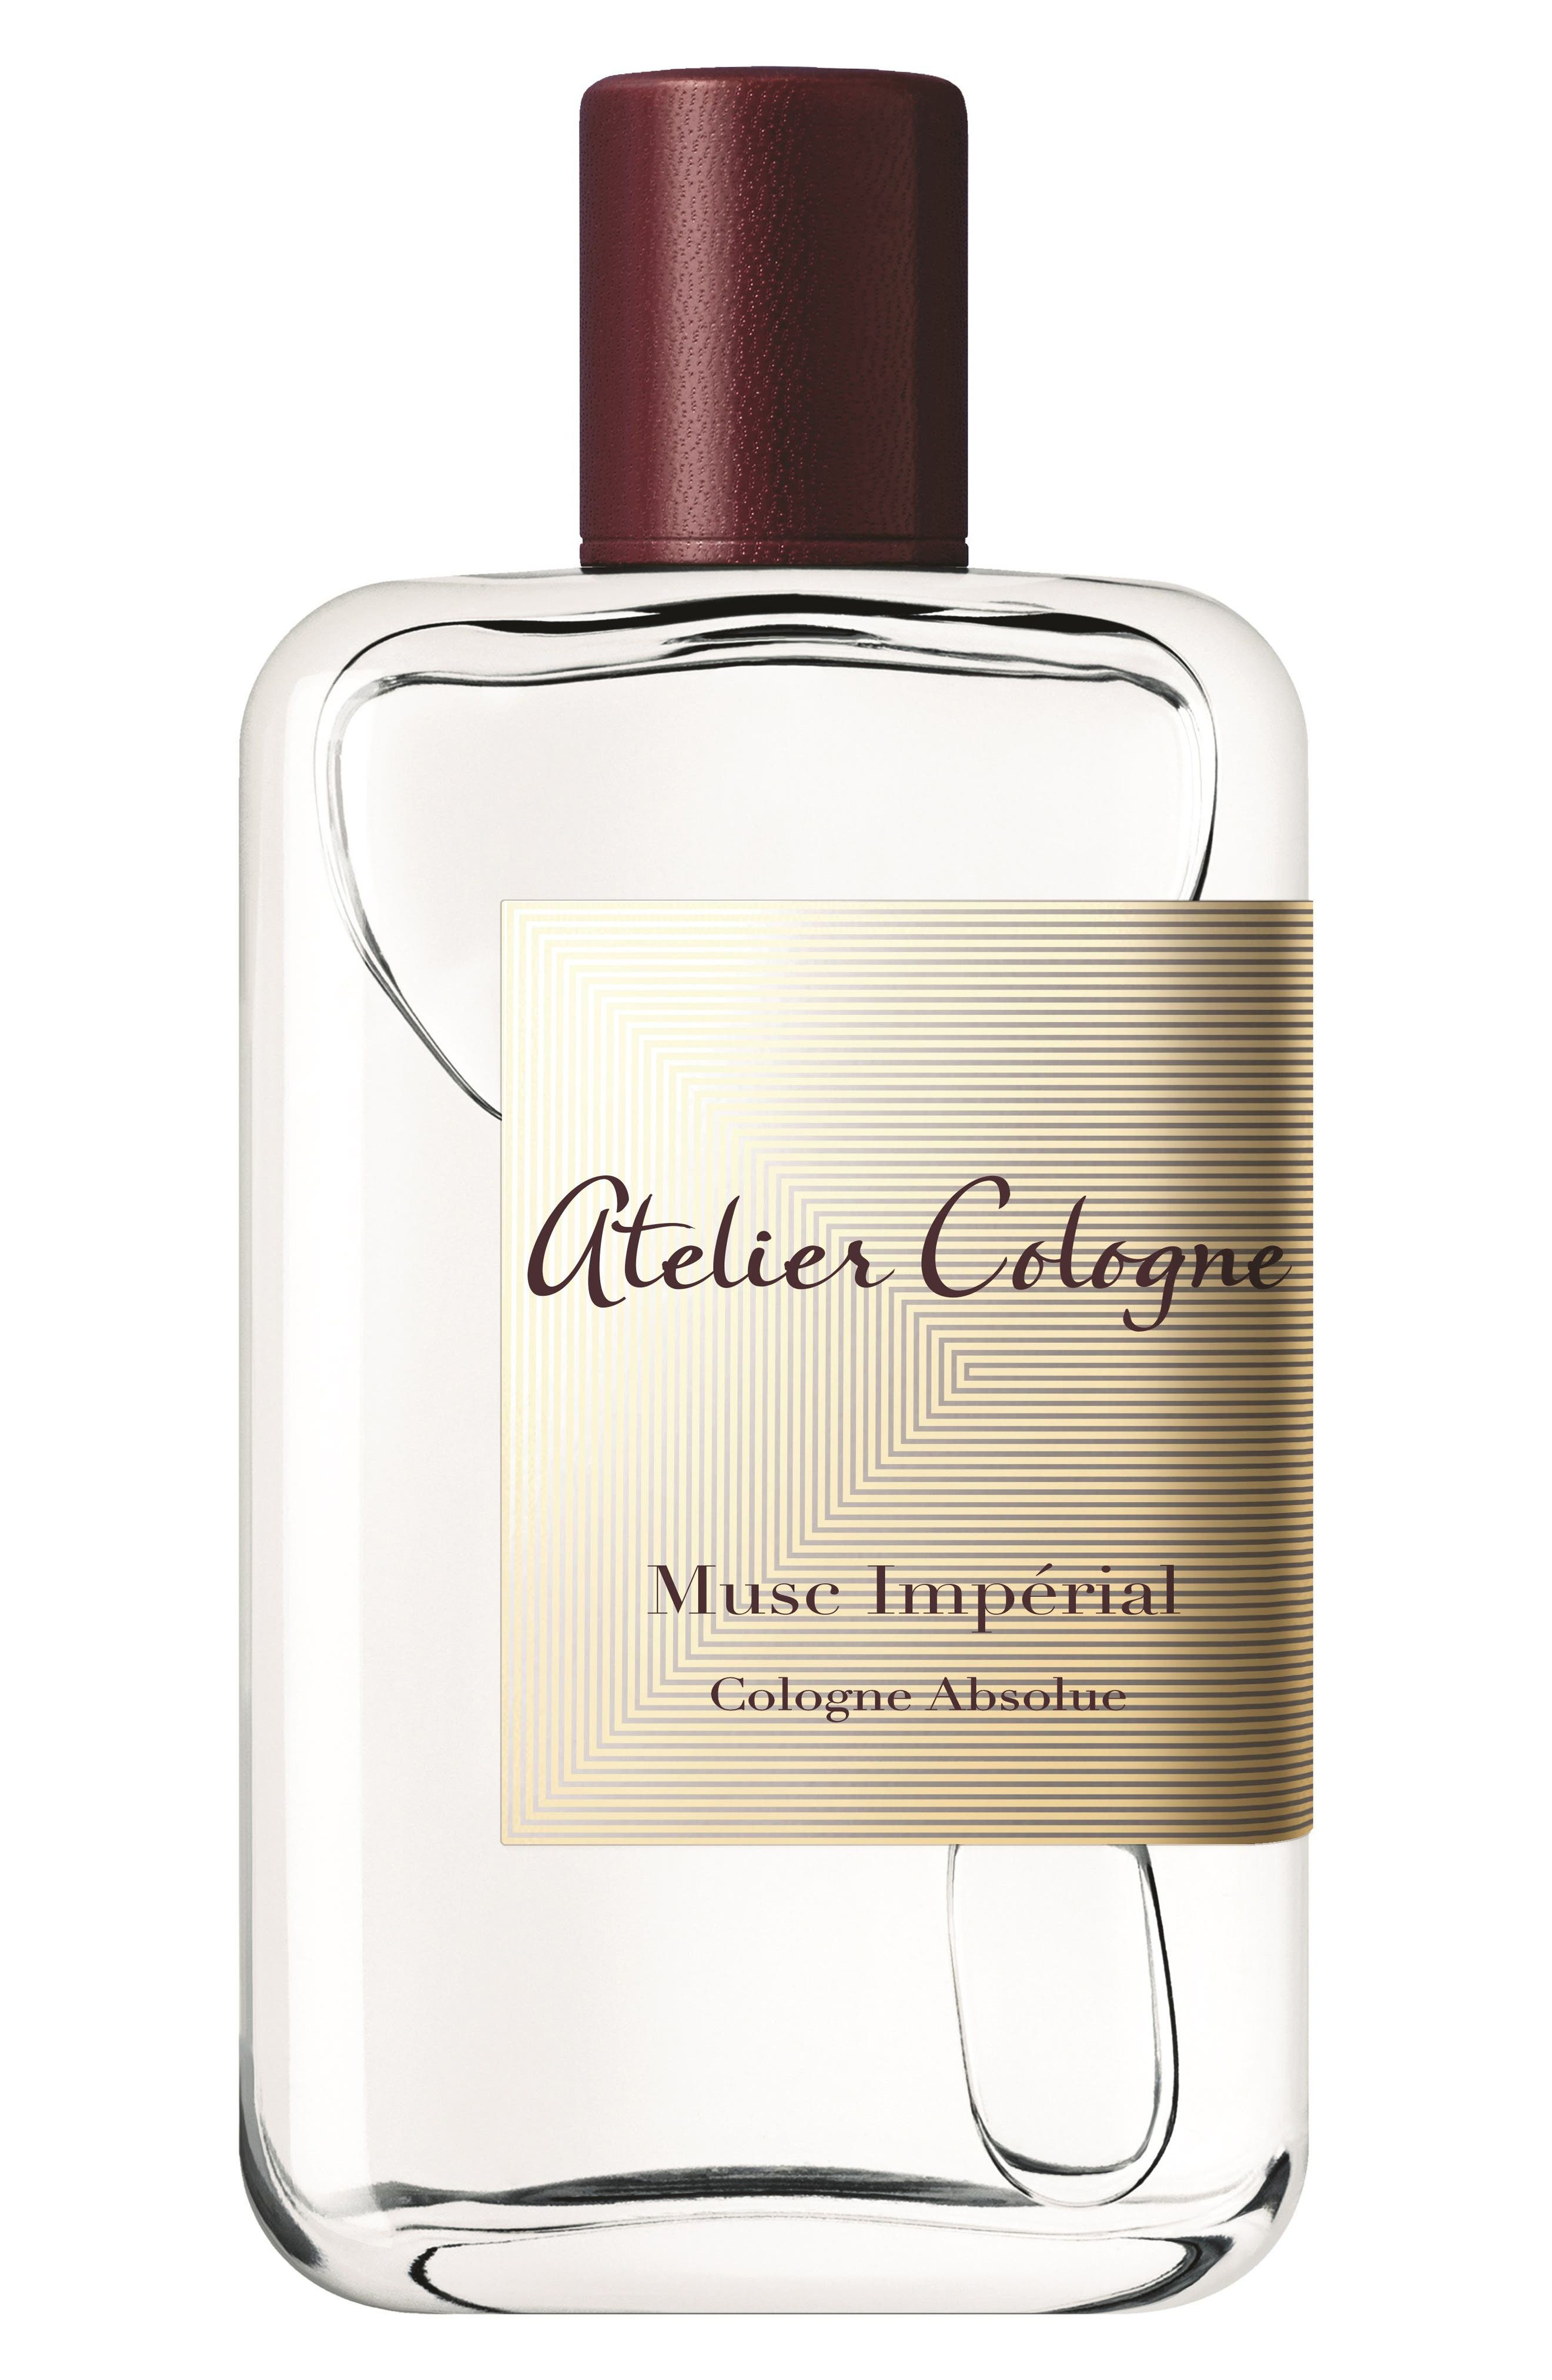 Main Image - Atelier Cologne Musc Impérial Cologen Absolue (Nordstrom Exclusive)